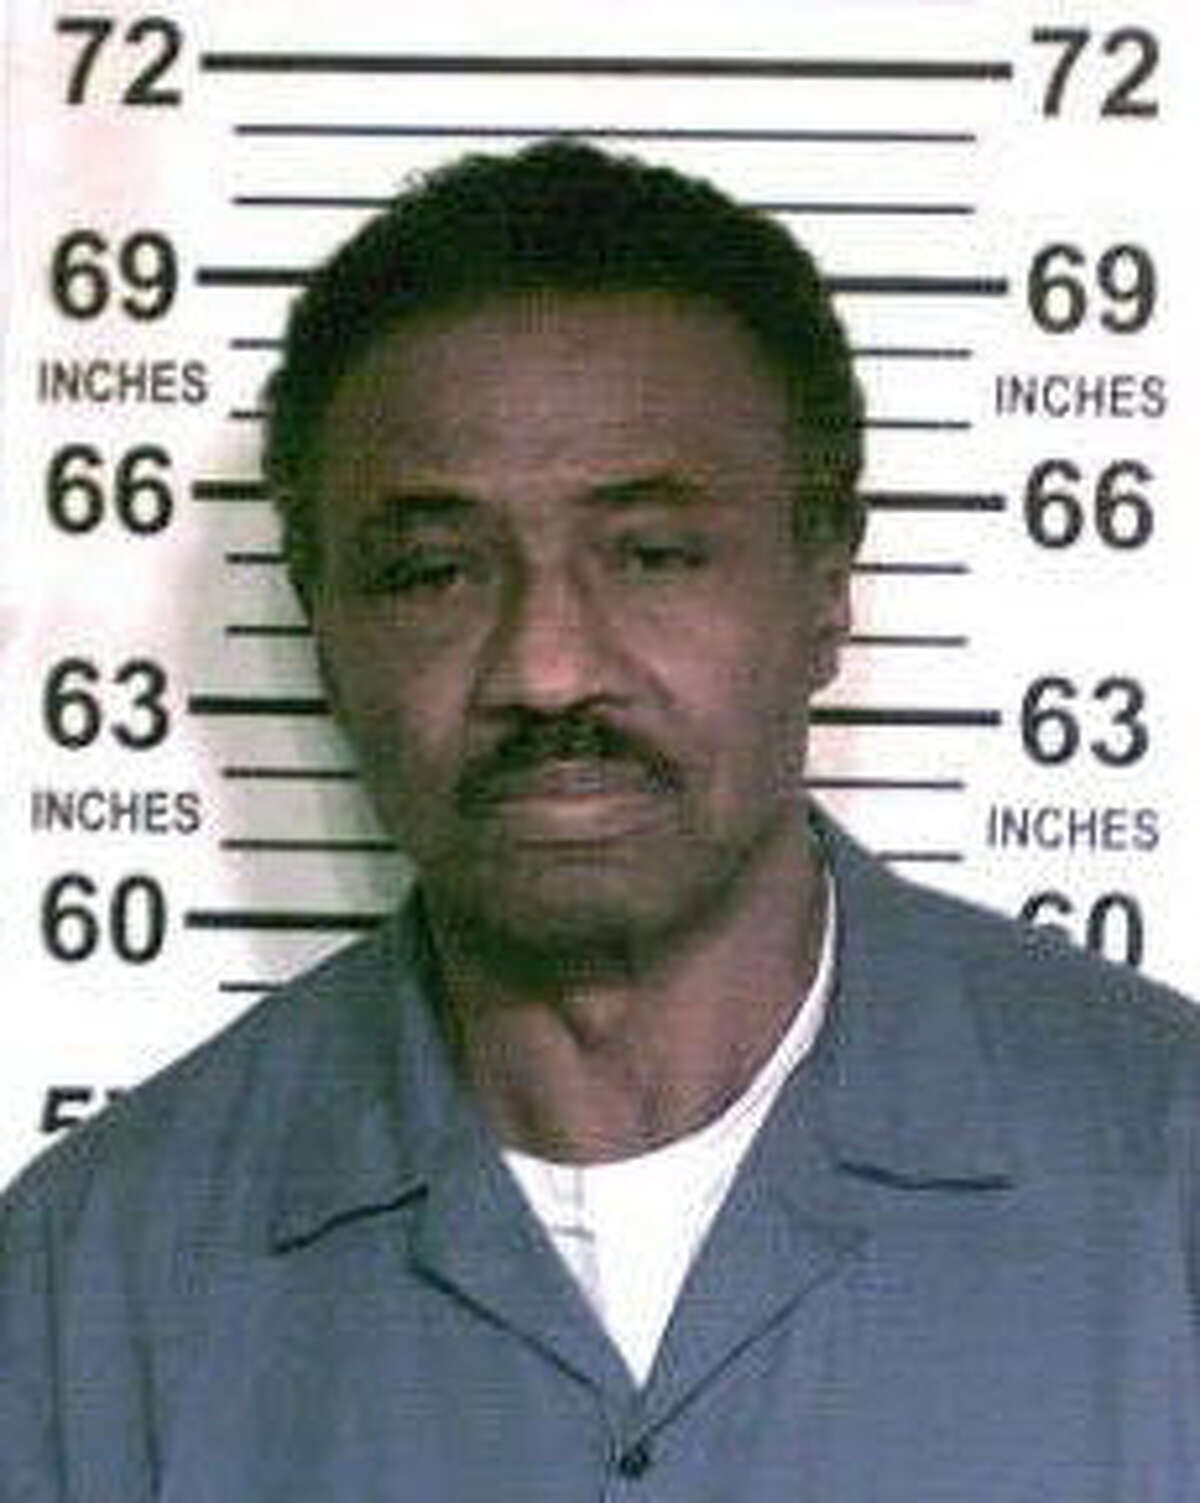 In this Oct. 10, 2017 photo provided by the New York State Department of Corrections and Community Supervision, inmate Herman Bell is poses for a photo at the Shawangunk Correctional Facility in Shawangunk, N.Y. Bell, a former member of a 1970s black radical group who was convicted of fatally shooting two New York City police officers has been granted parole. (New York State Department of Corrections and Community Supervision via AP)